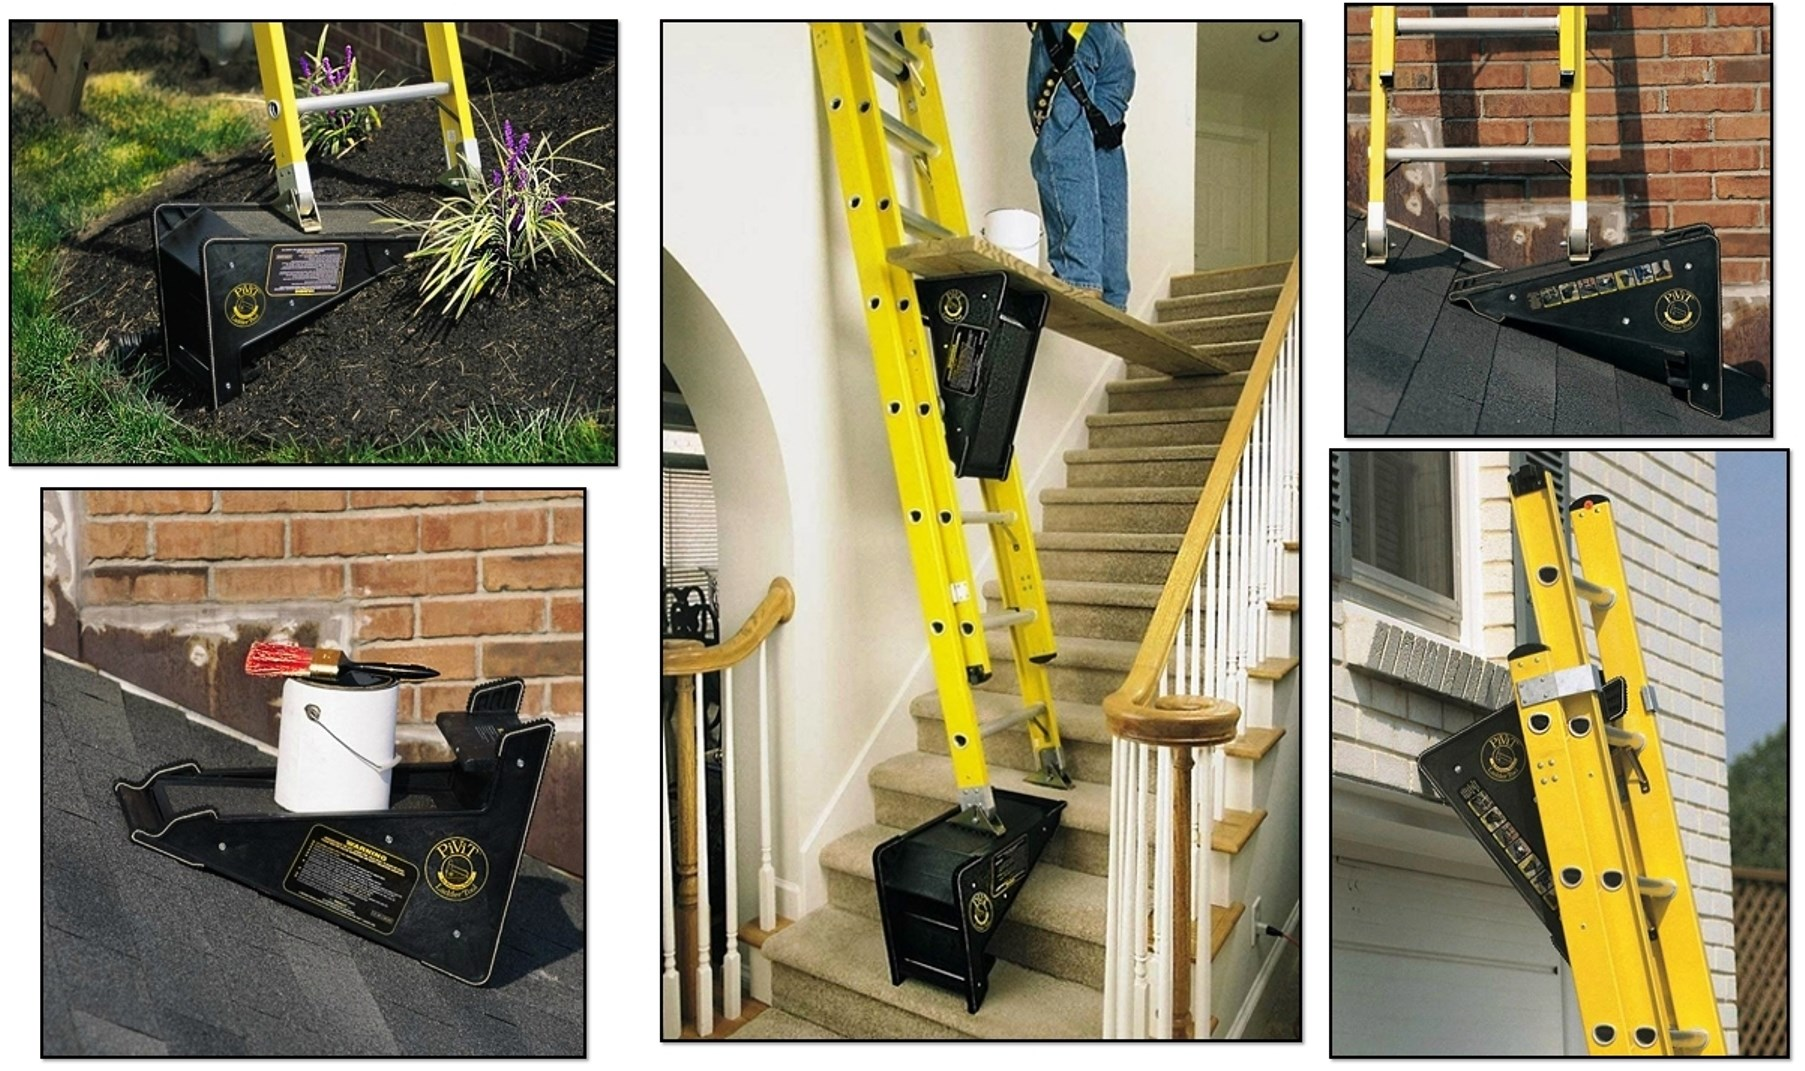 Buy The Provision Tools 689280001022dtr Pivit Ladder